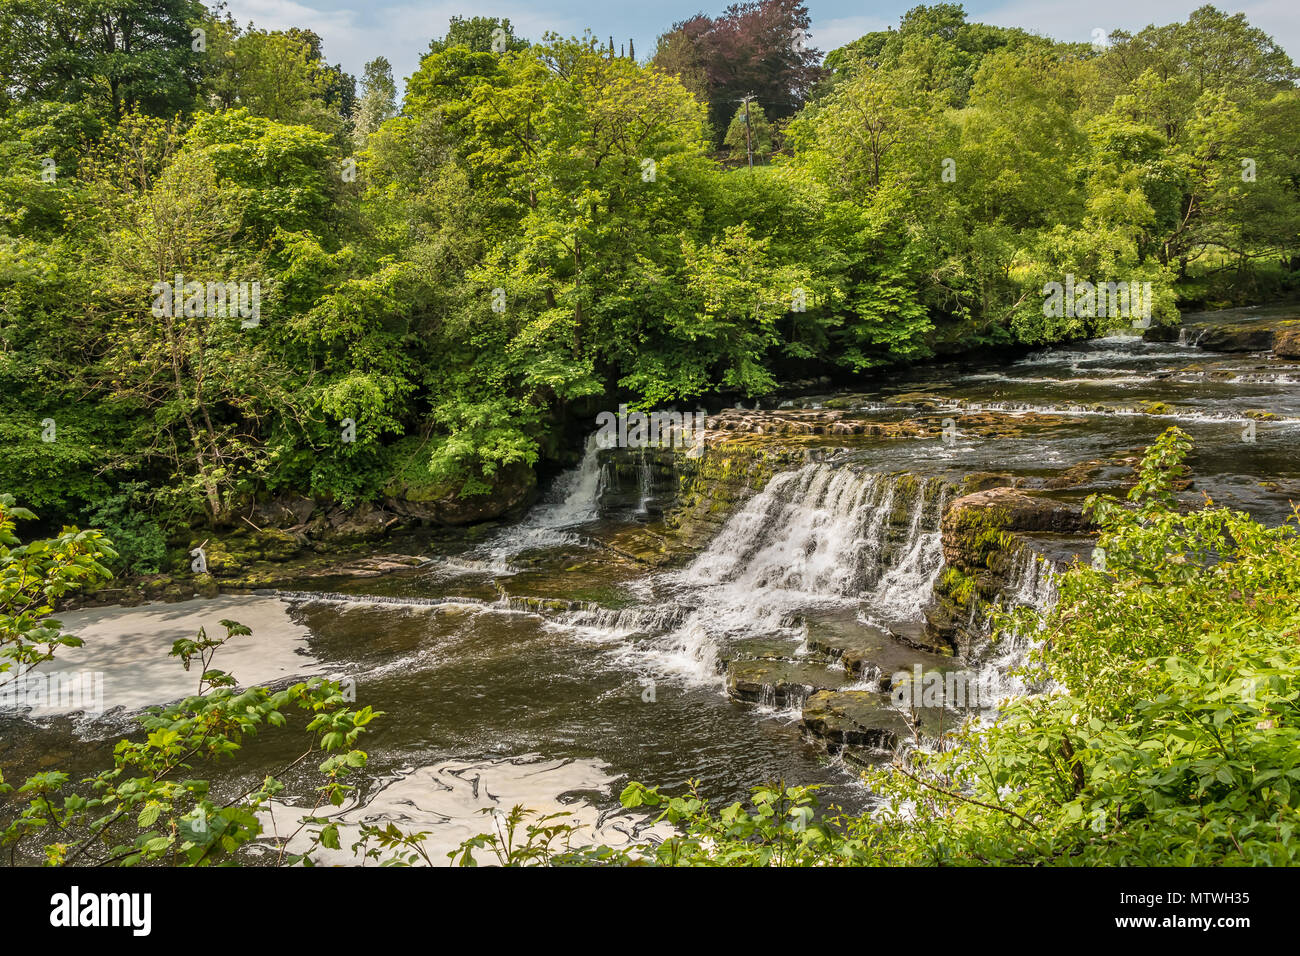 Middle Falls, Aysgarth, Wensleydale, Yorkshire Dales National Park, UK in late spring with very low water level Stock Photo